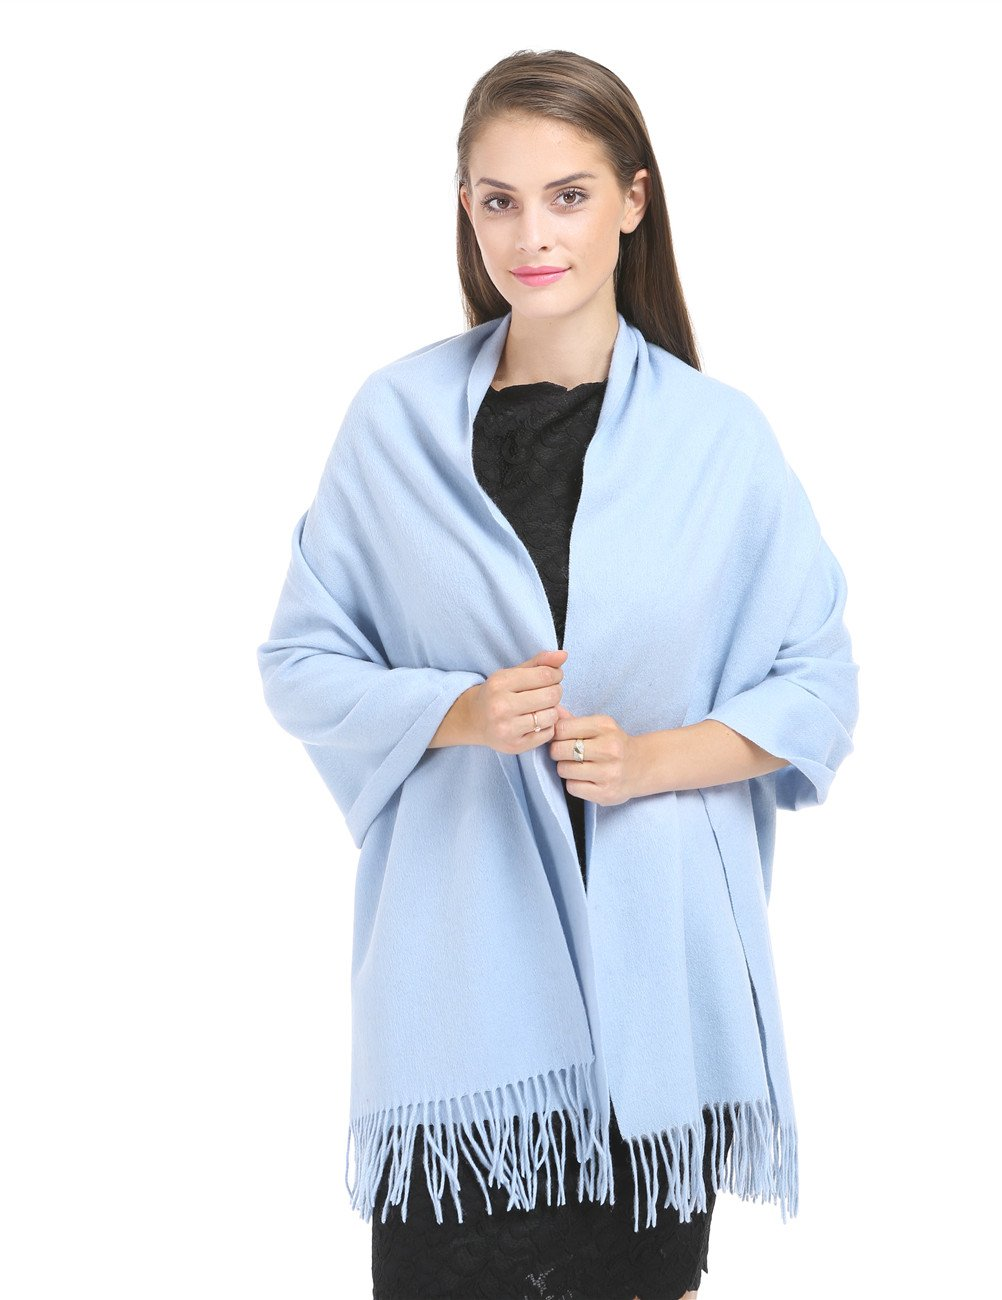 Saferin 78'' X 28'' Soft Warm Women Luxurious Solid Cashmere Lambswool Pashmina Wrap Shawl Scarf with Gift Box (8.blue)